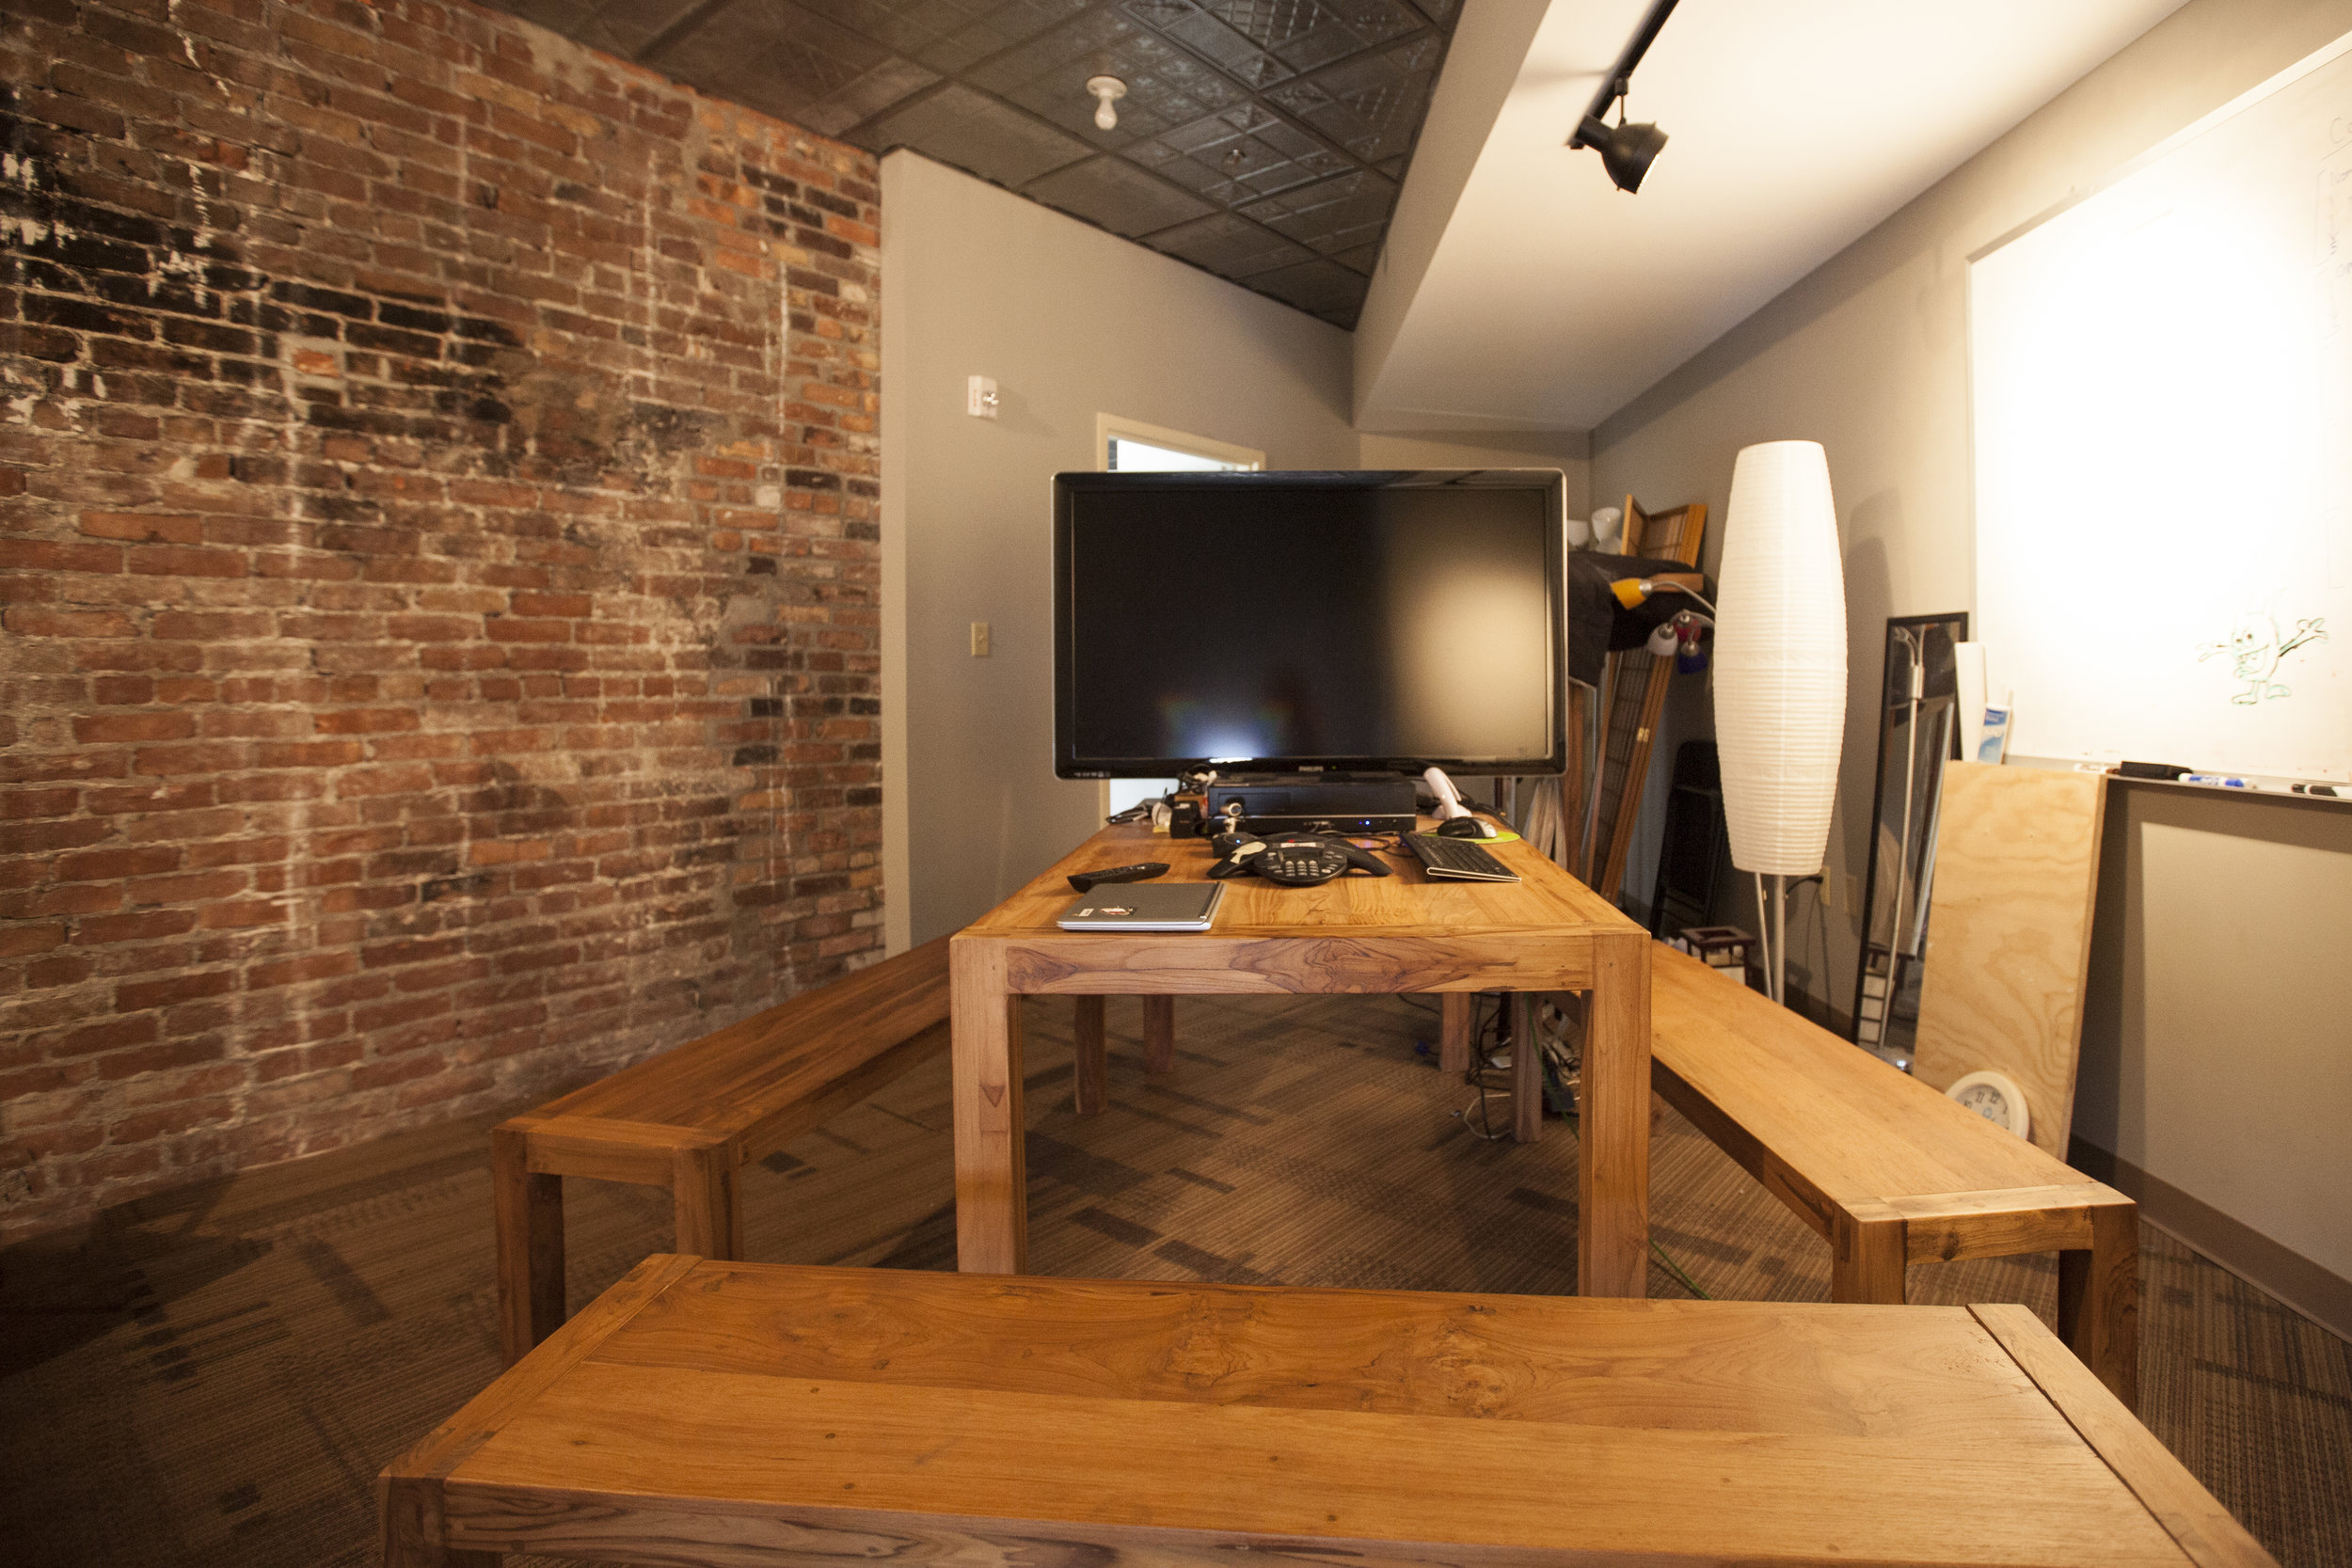 Other small and difficult spaces needed quick and affordable make overs to become meeting spaces. This room has the original brick wall exposed and hardwood furniture installed.